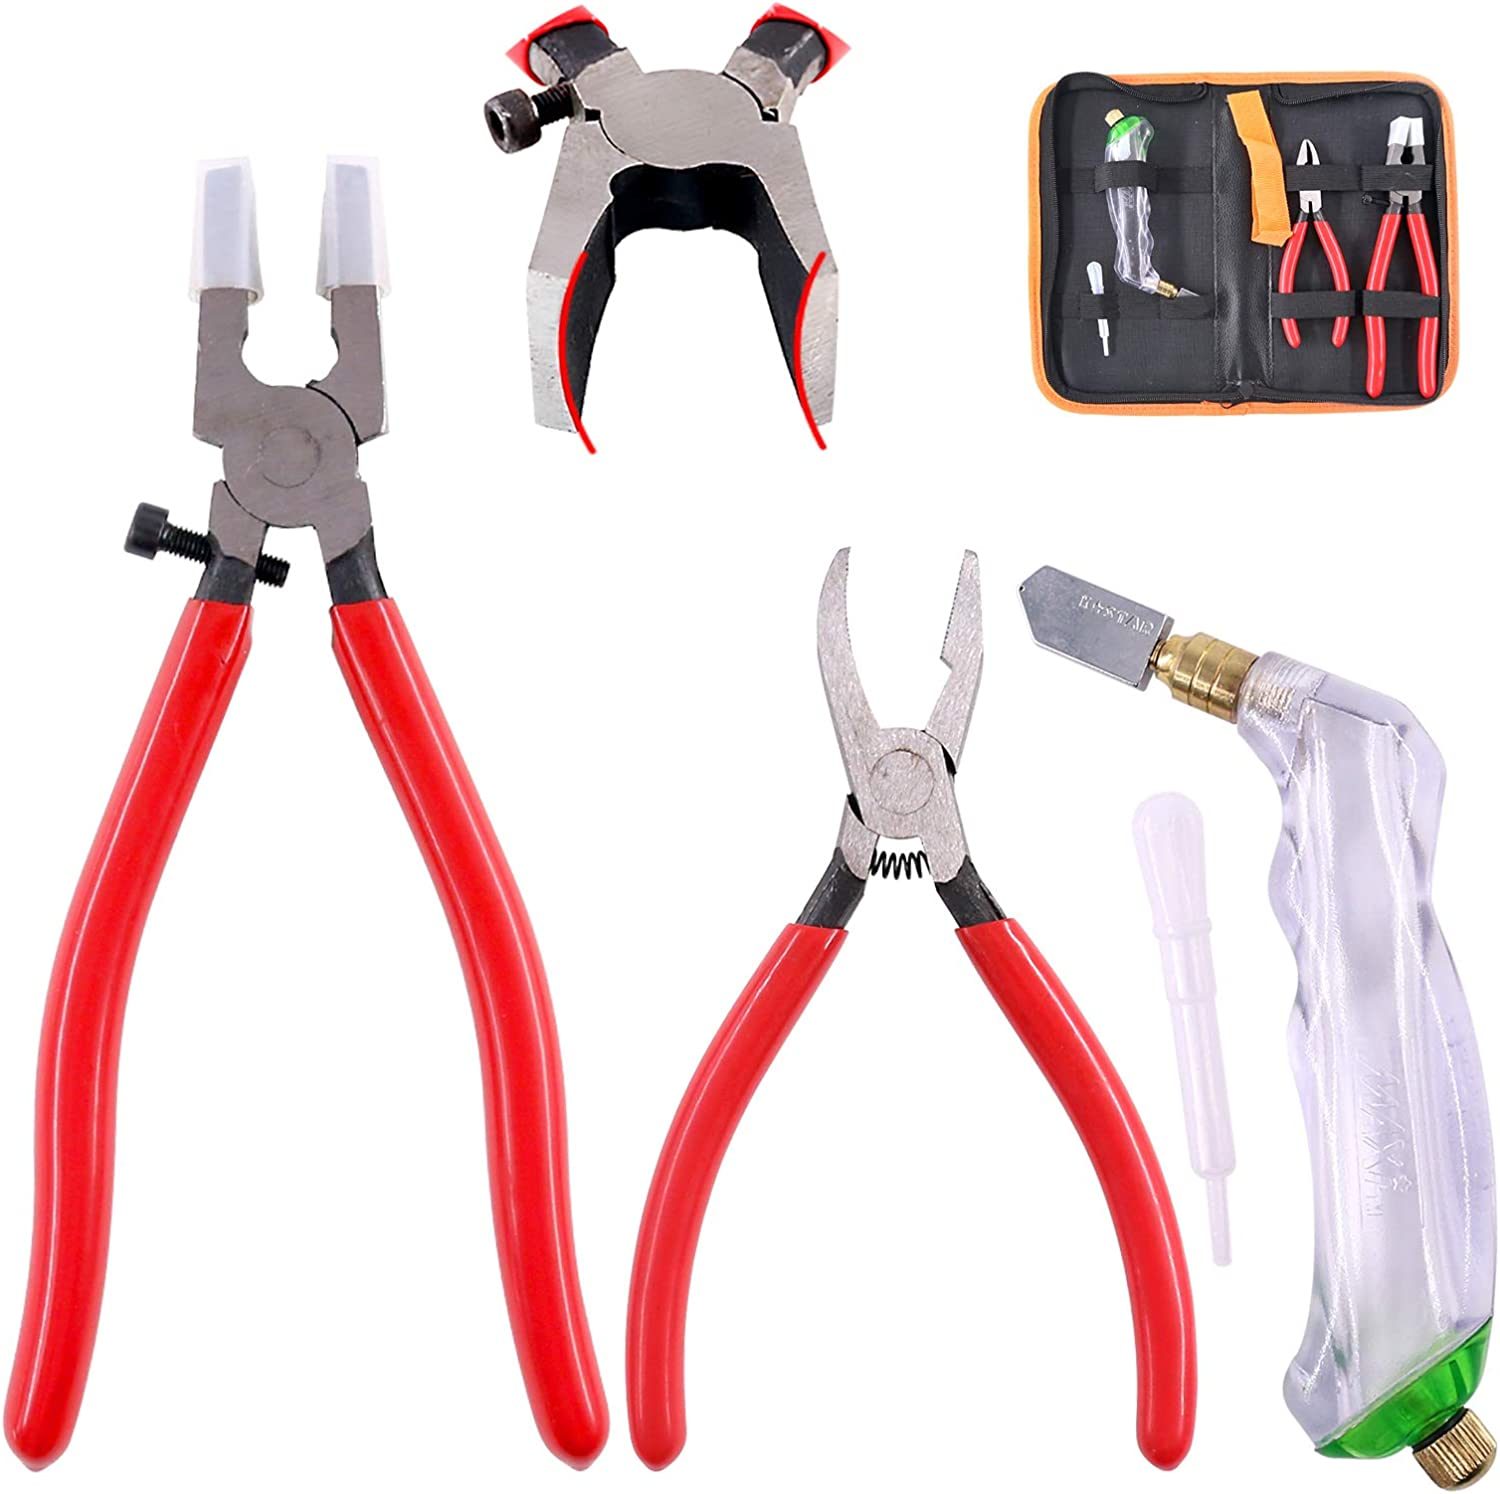 Hilitchi 3-Pcs Premium Glass Running Breaking Pliers and Pistol Grip Cutter Set Glass Tool for Stained Glass, Mosaics and Fusing Work